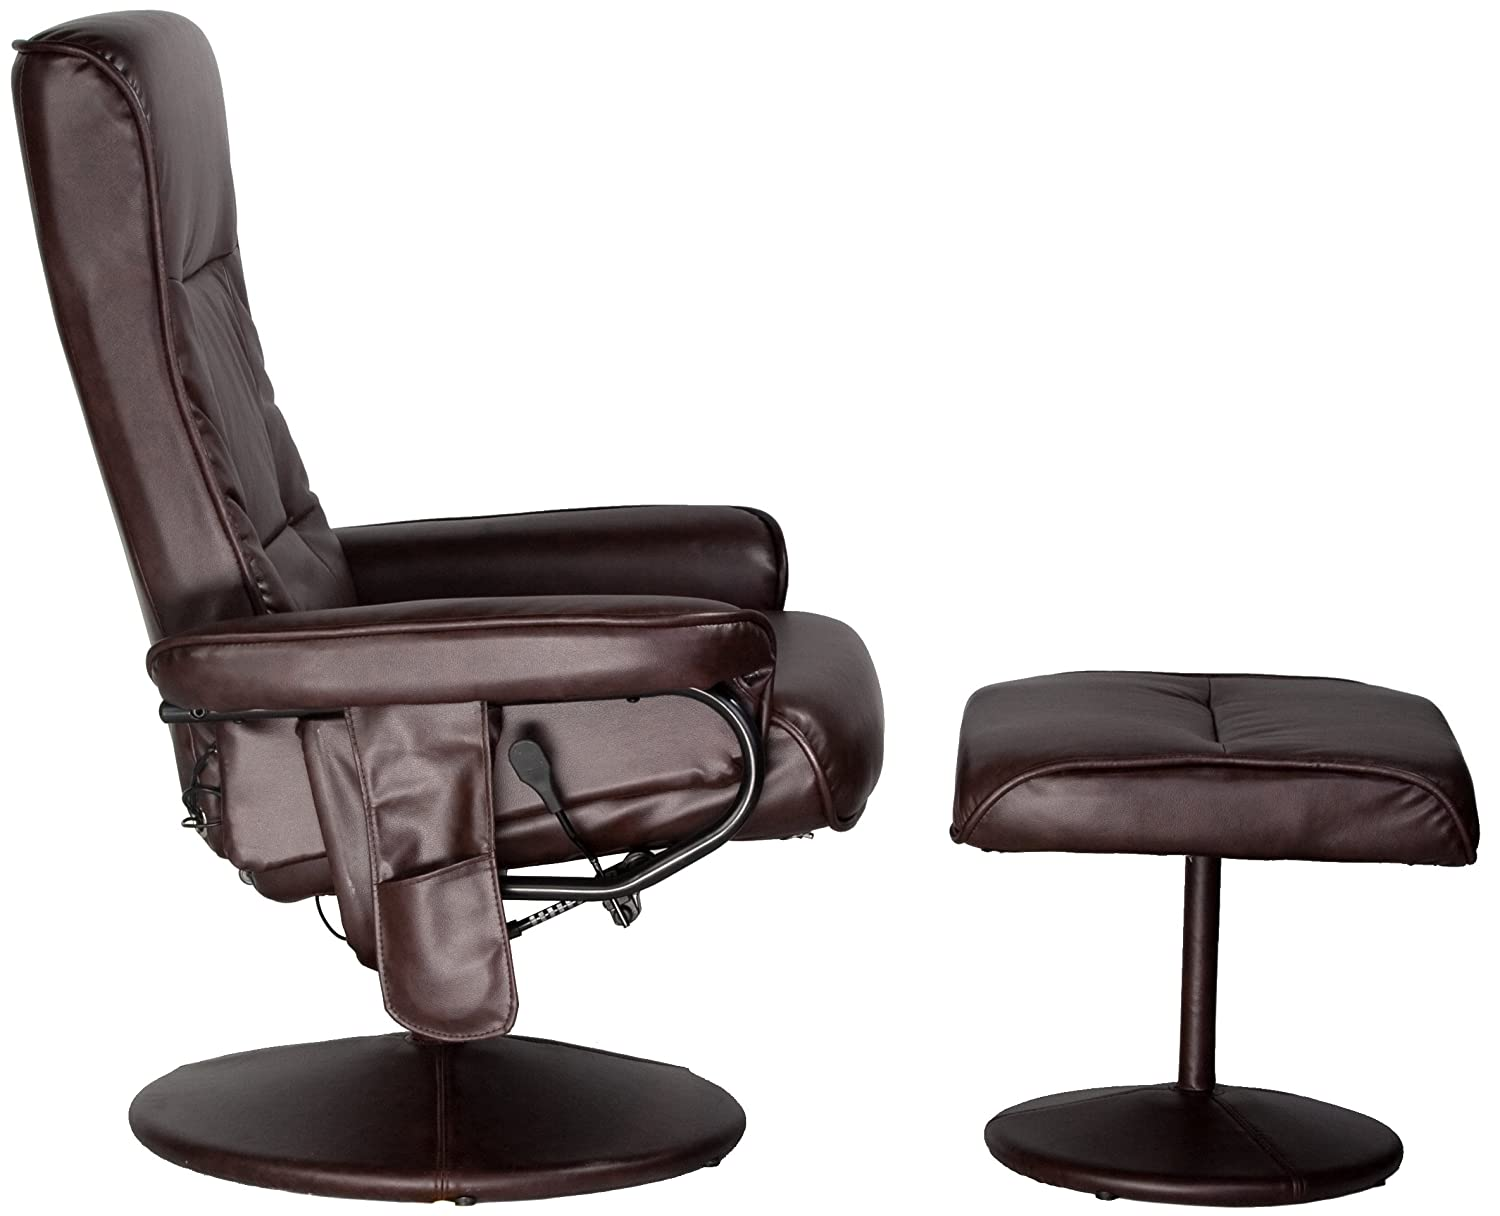 Exceptionnel Relaxzen Leisure Massage Reclining Chair With Heat In Comfort Soft  Upholstery, Brown: Amazon.ca: Home U0026 Kitchen